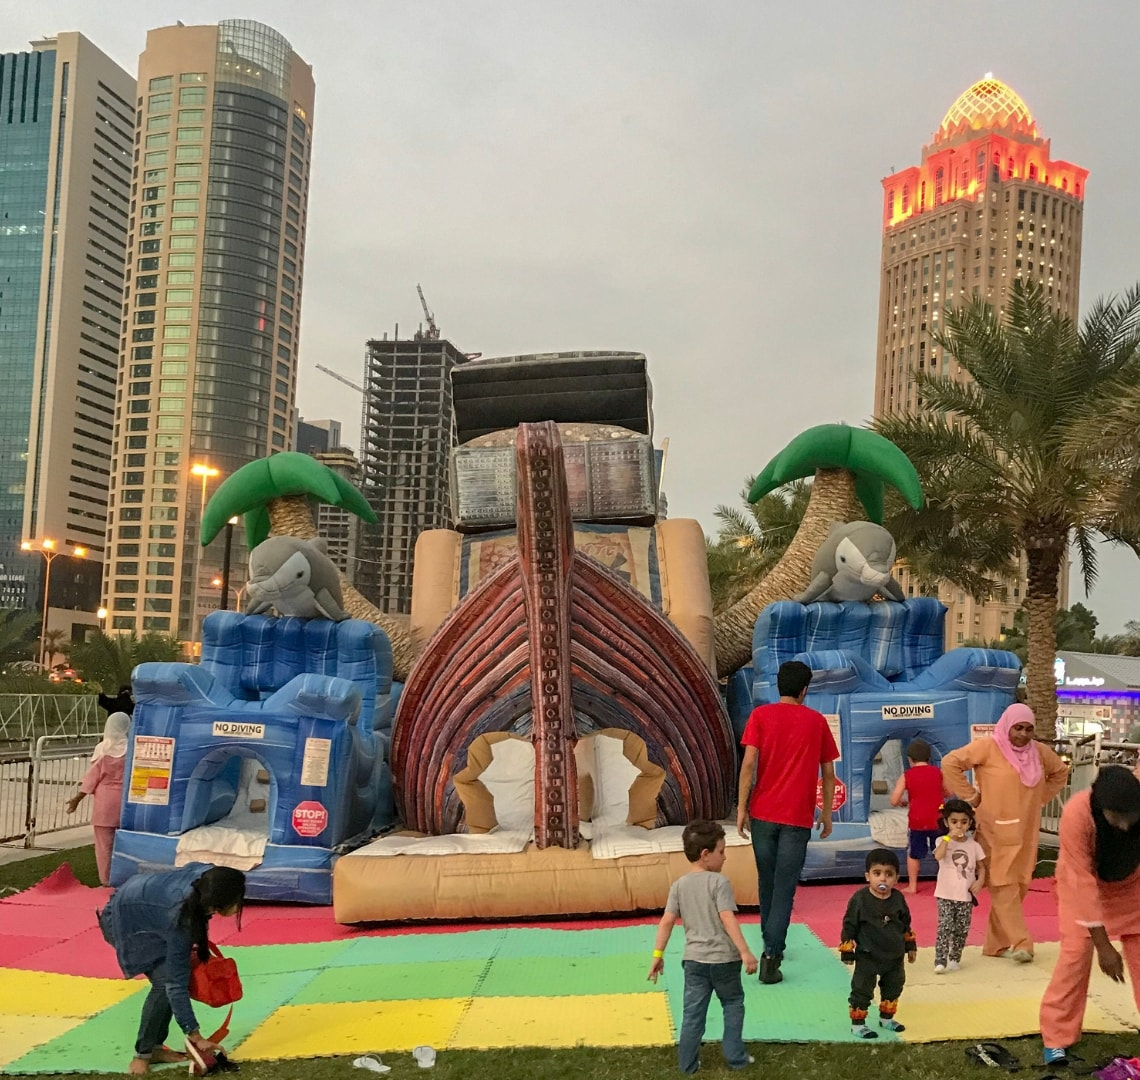 the pirate themed bouncy castle | Things to do in Doha | Explore your town - find adventure every day